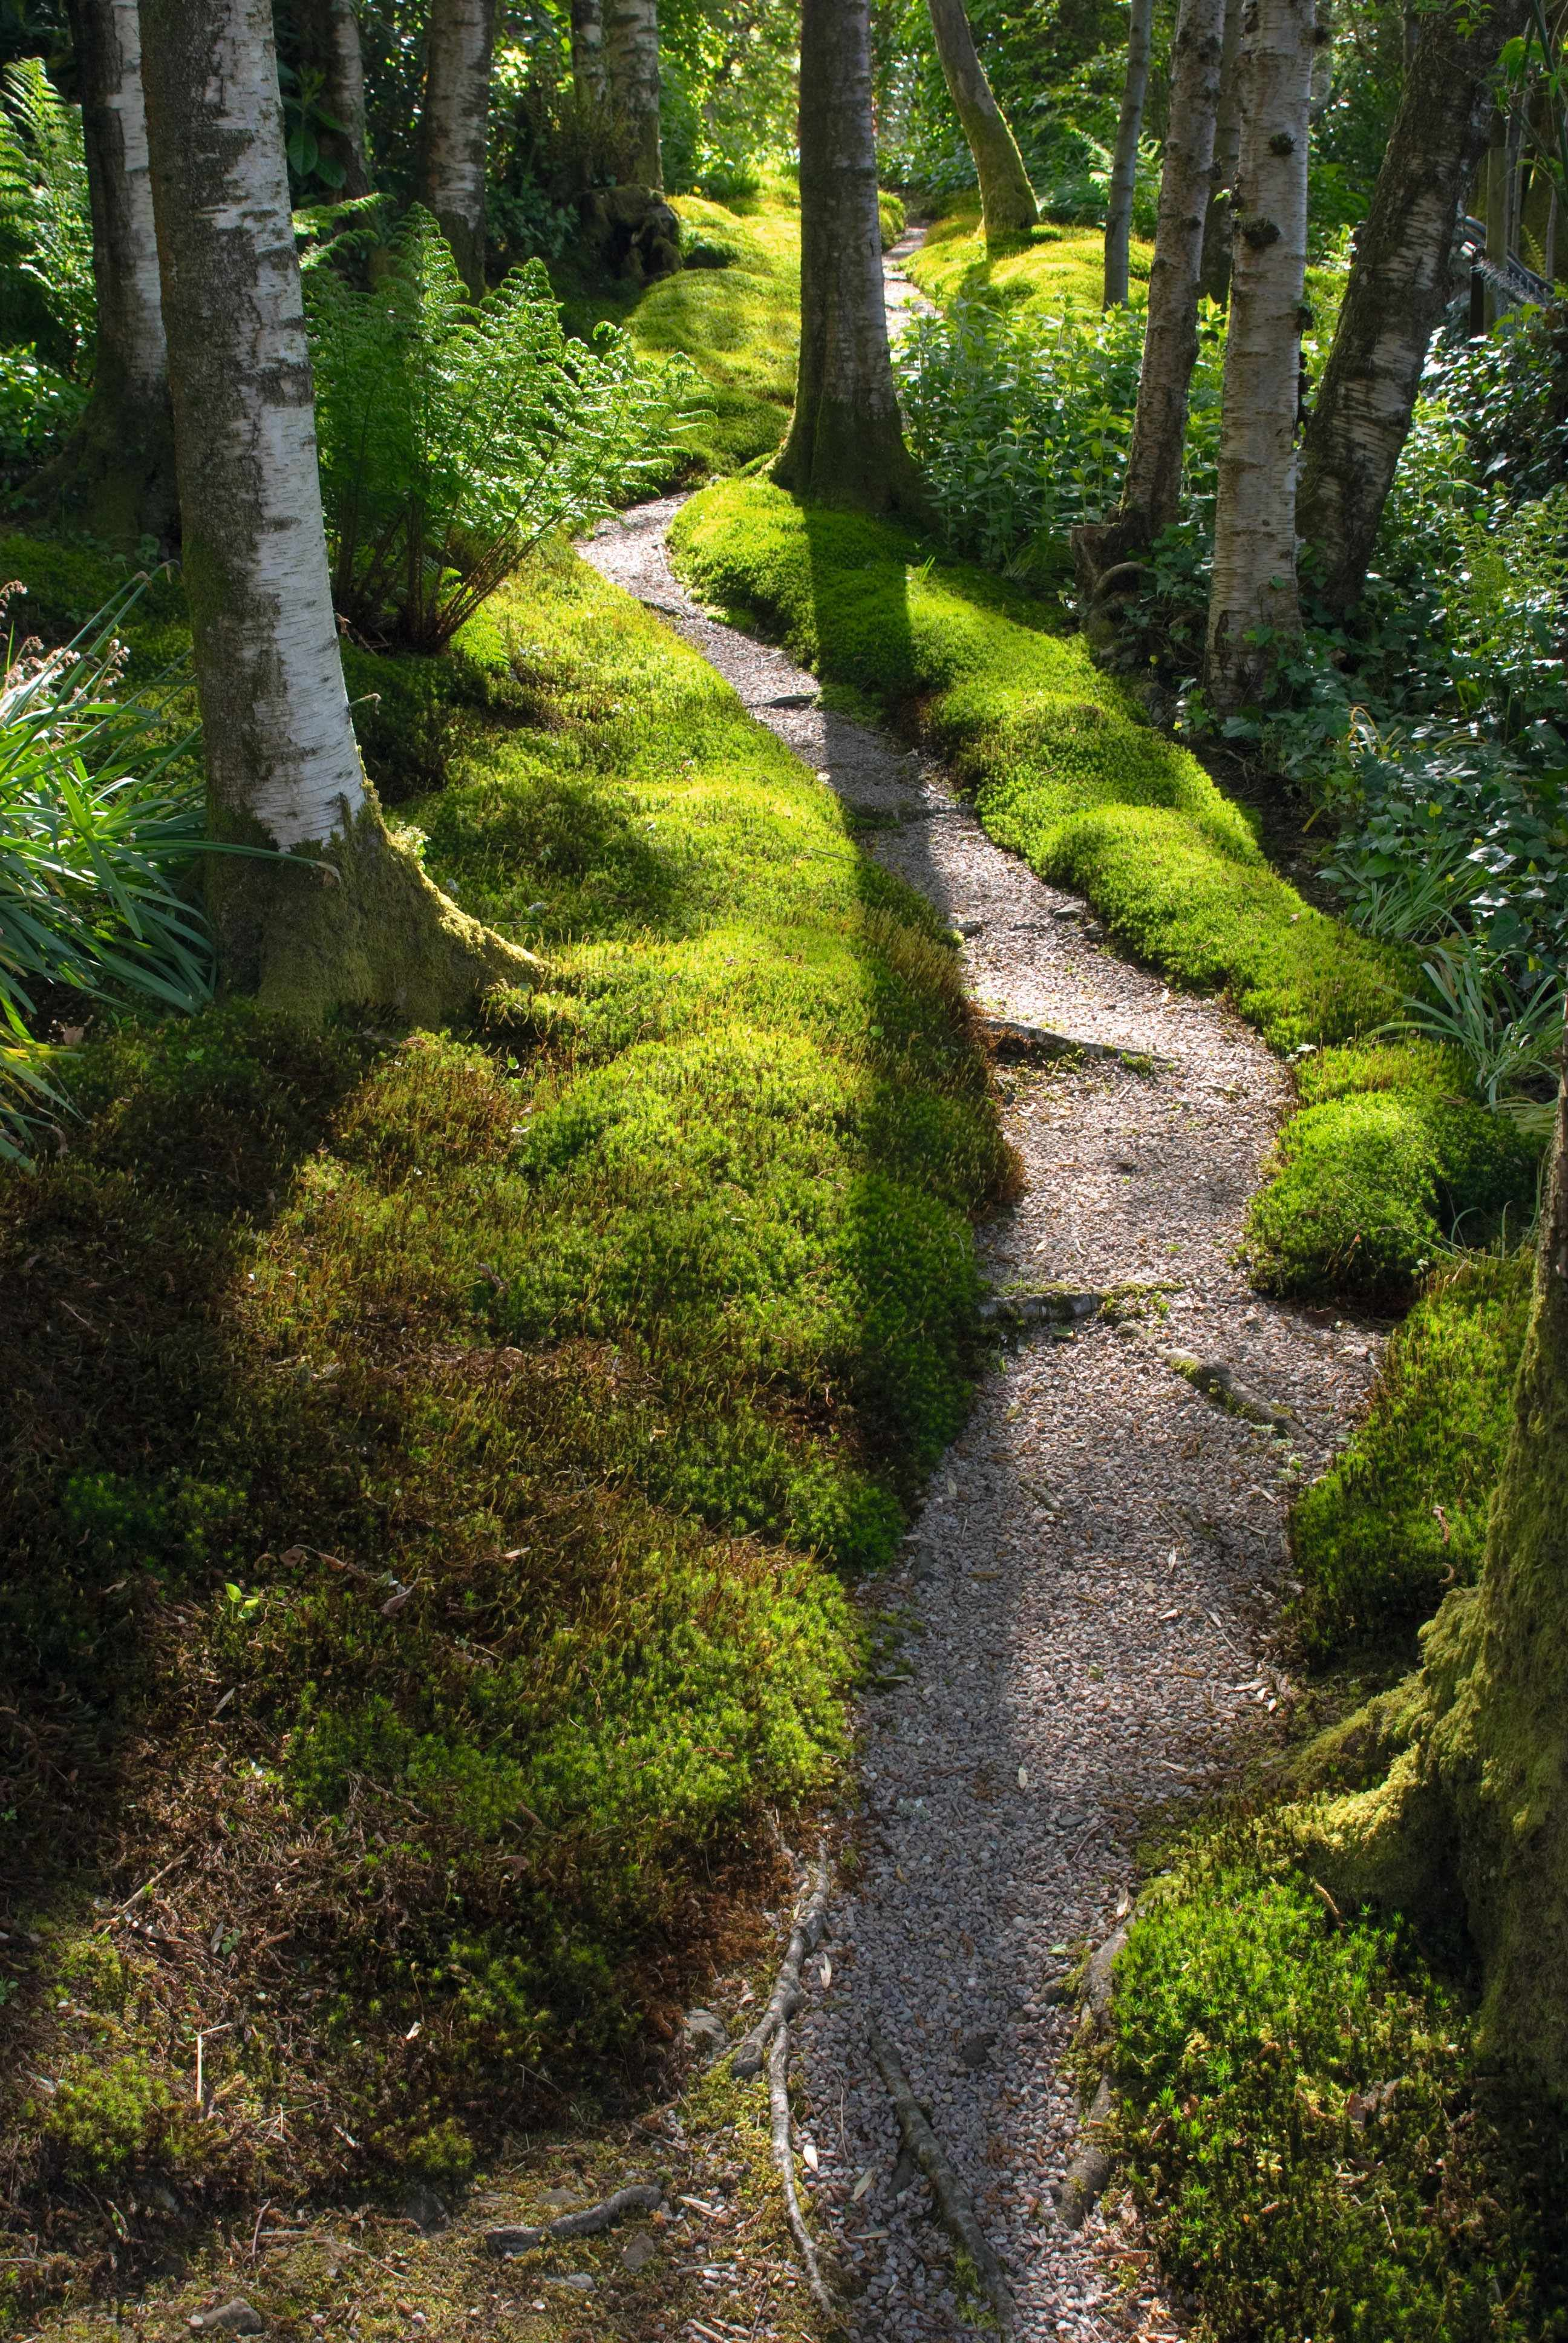 shade-loving mosses, ferns and lichens